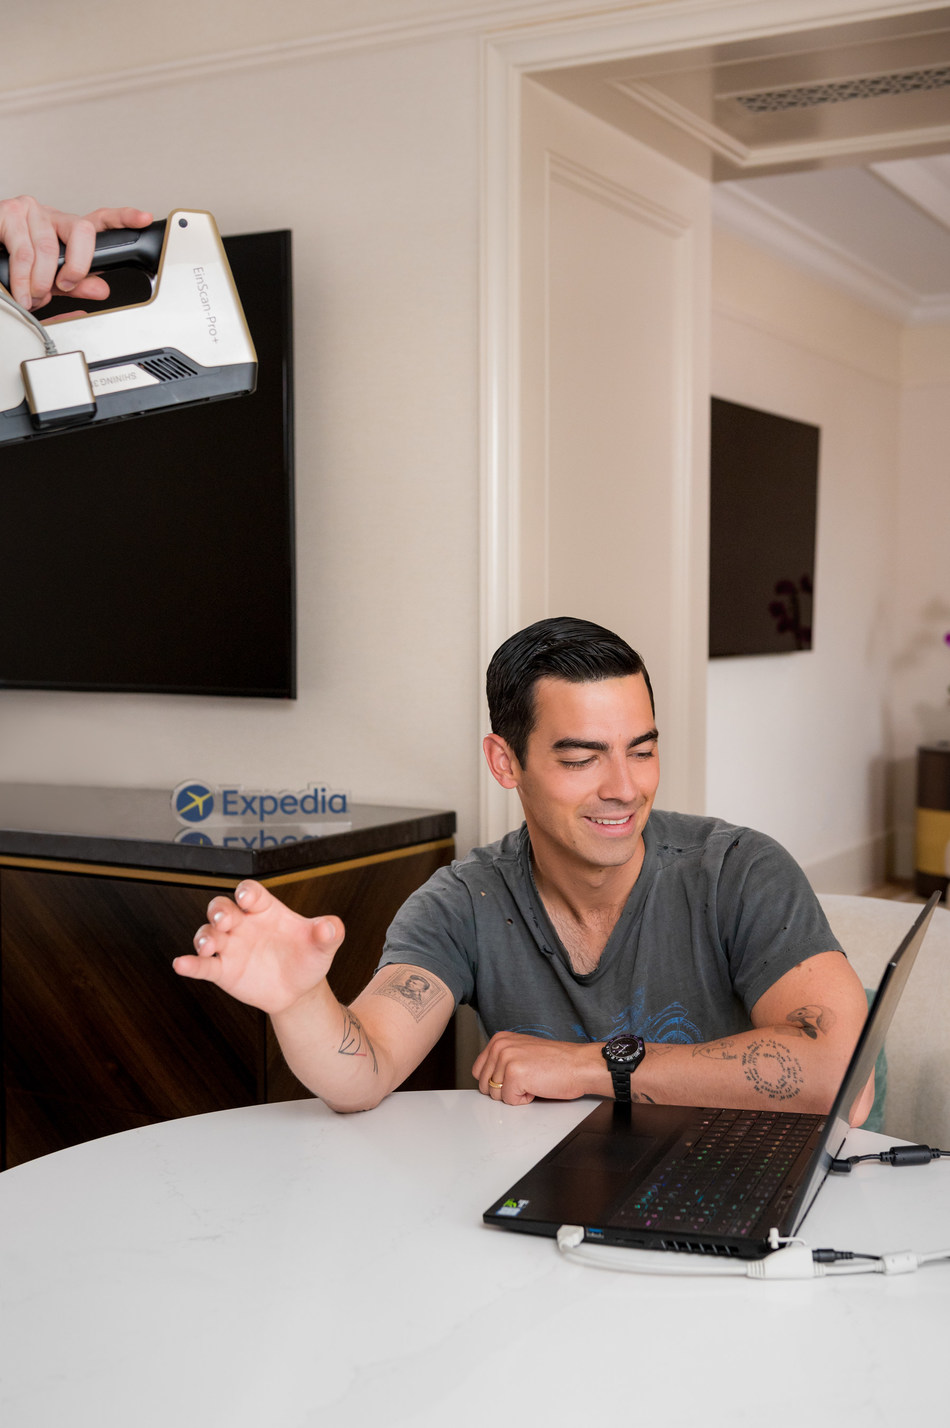 A sneak peek at the making of the Expedia Helping Hand - an exact replica of Joe Jonas's right hand that will be offered in support to travelers who are eager to travel the world again.